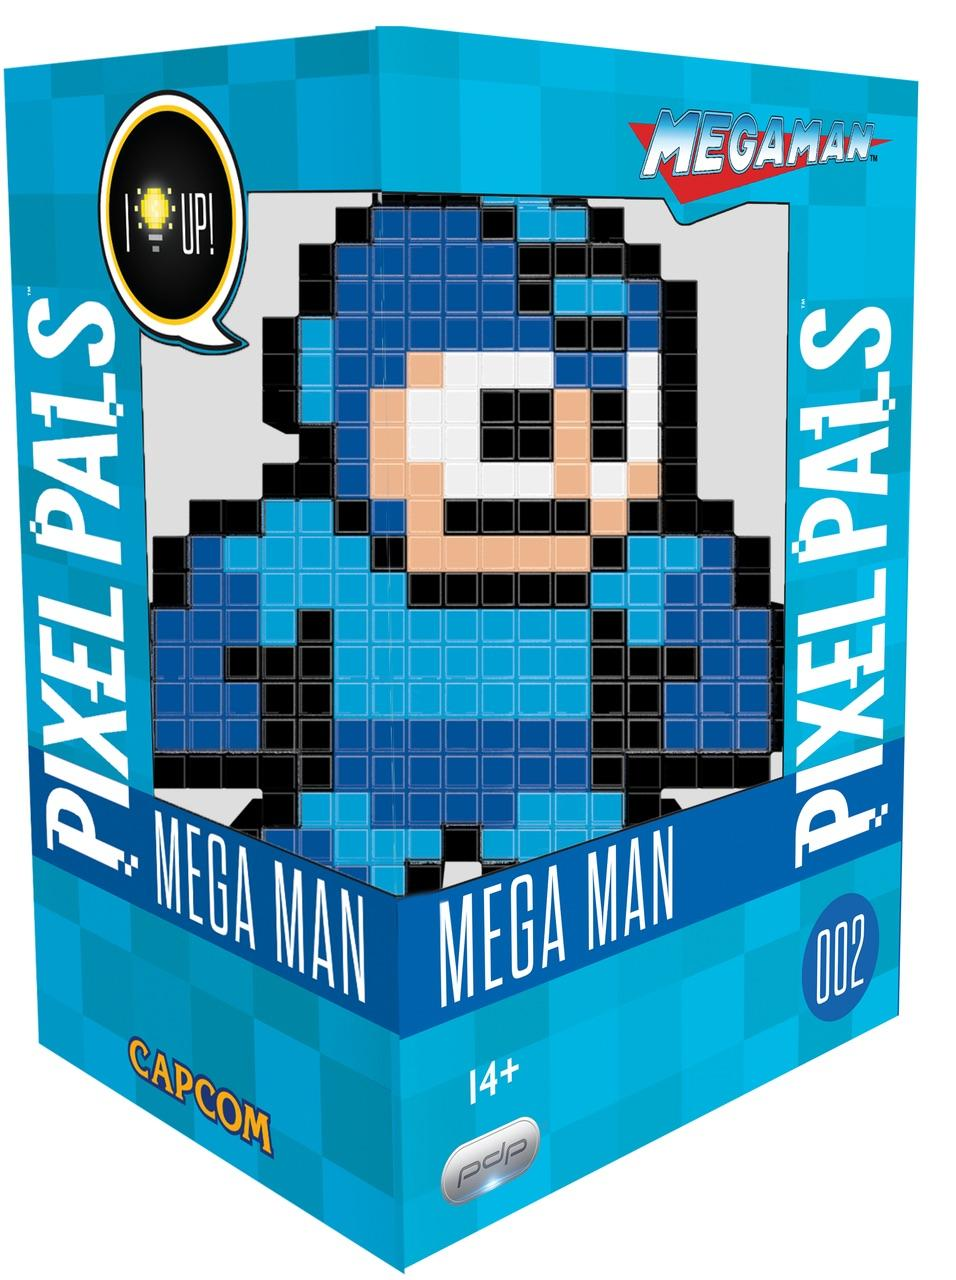 PIXEL PALS Light Up Collectible Figures - Capcom - Megaman - W2